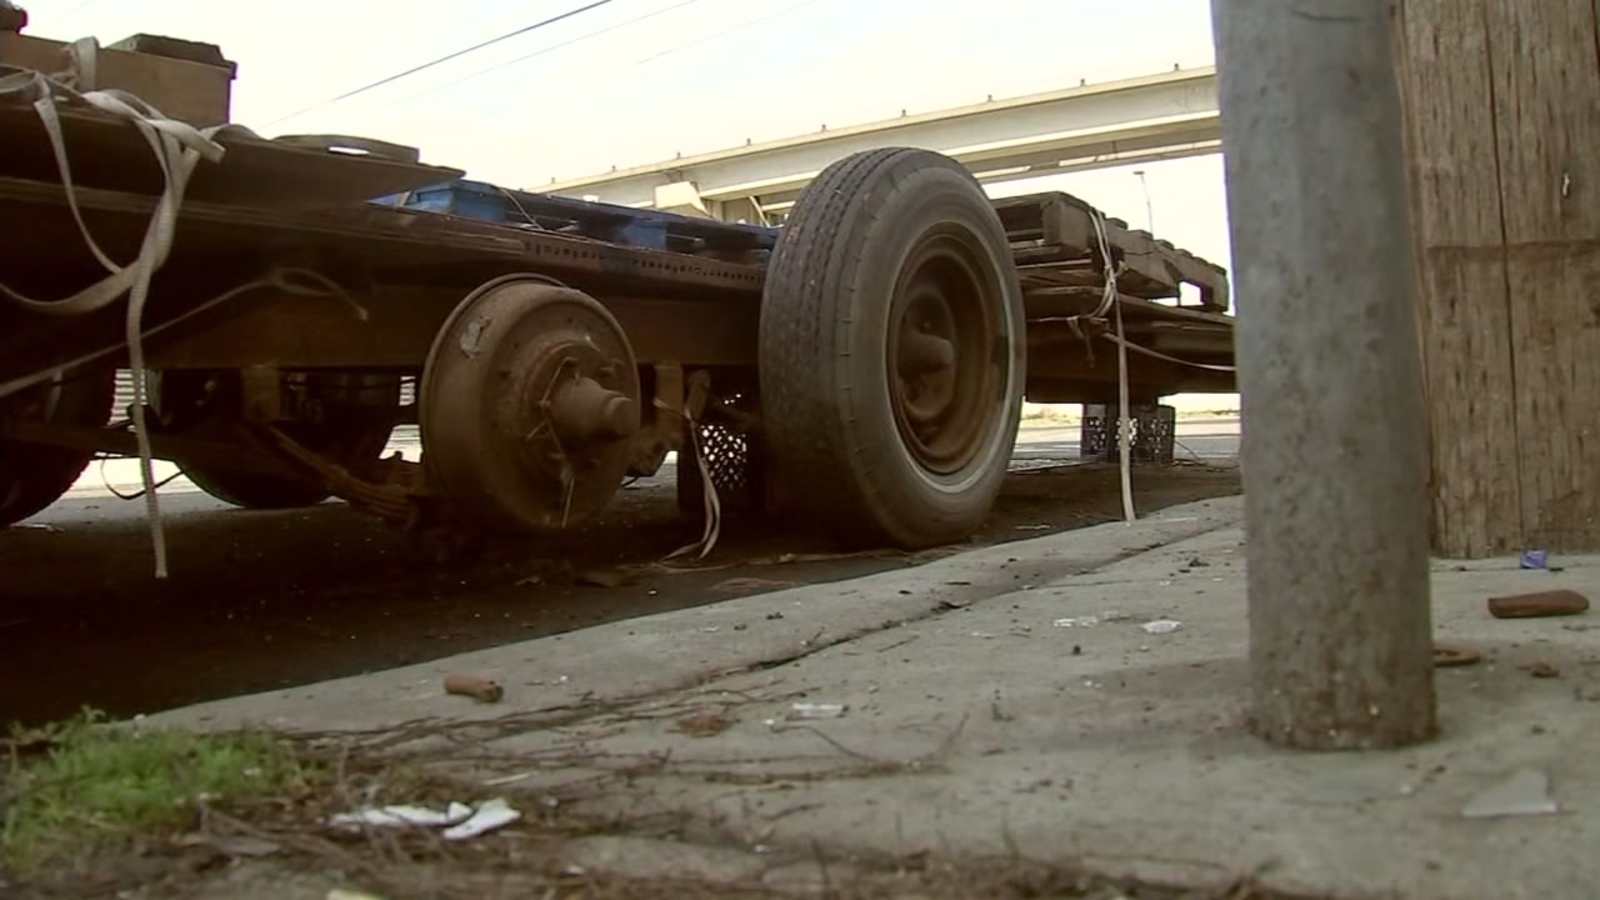 Trailer with toxic waste found dumped in Oakland neighborhood, officials address illegal dumping issue